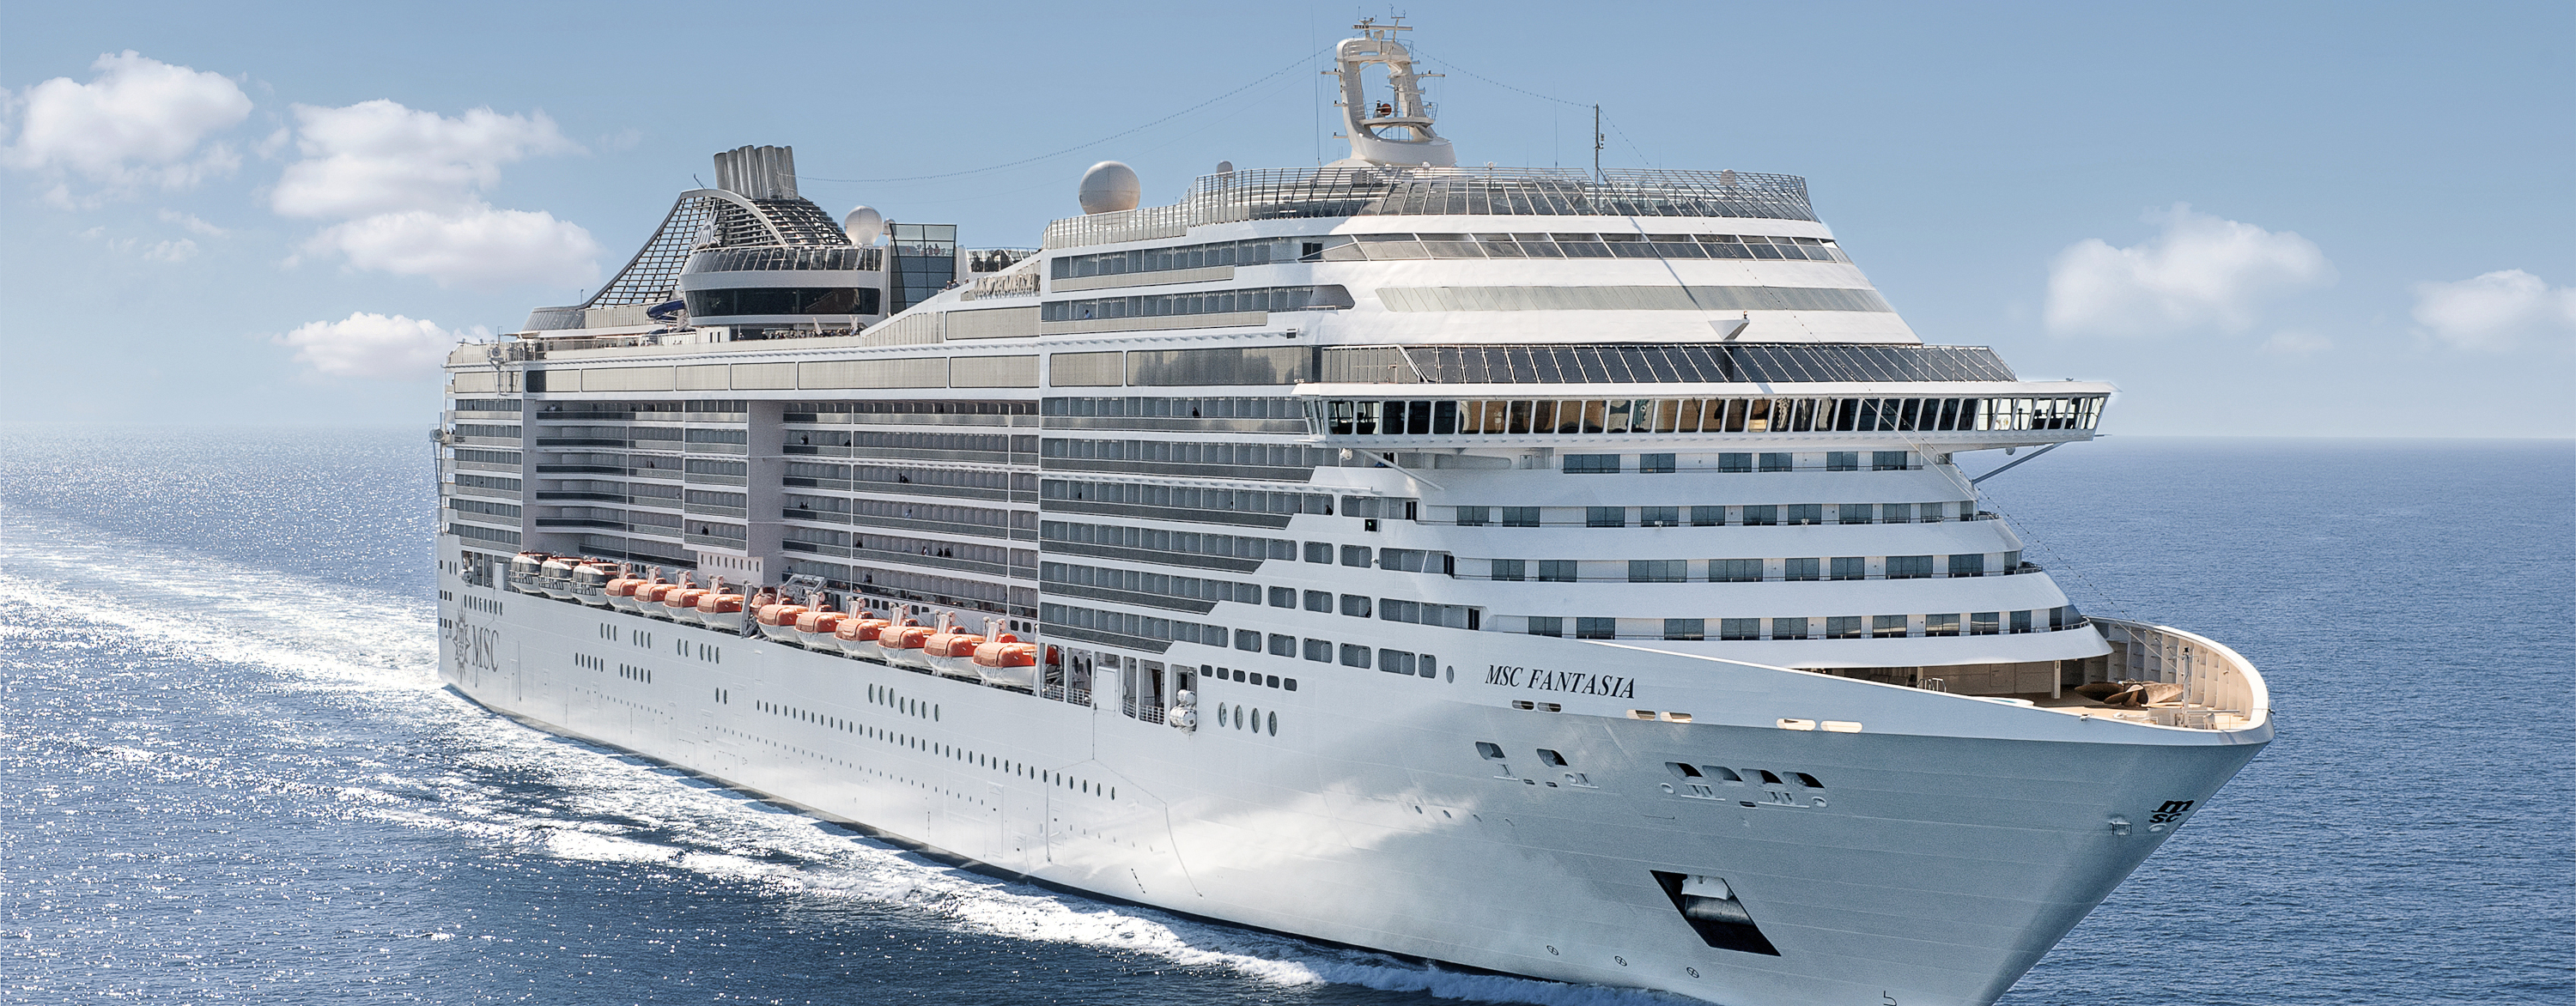 Short Mediterranean Cruise from Barcelona on MSC Fantasia